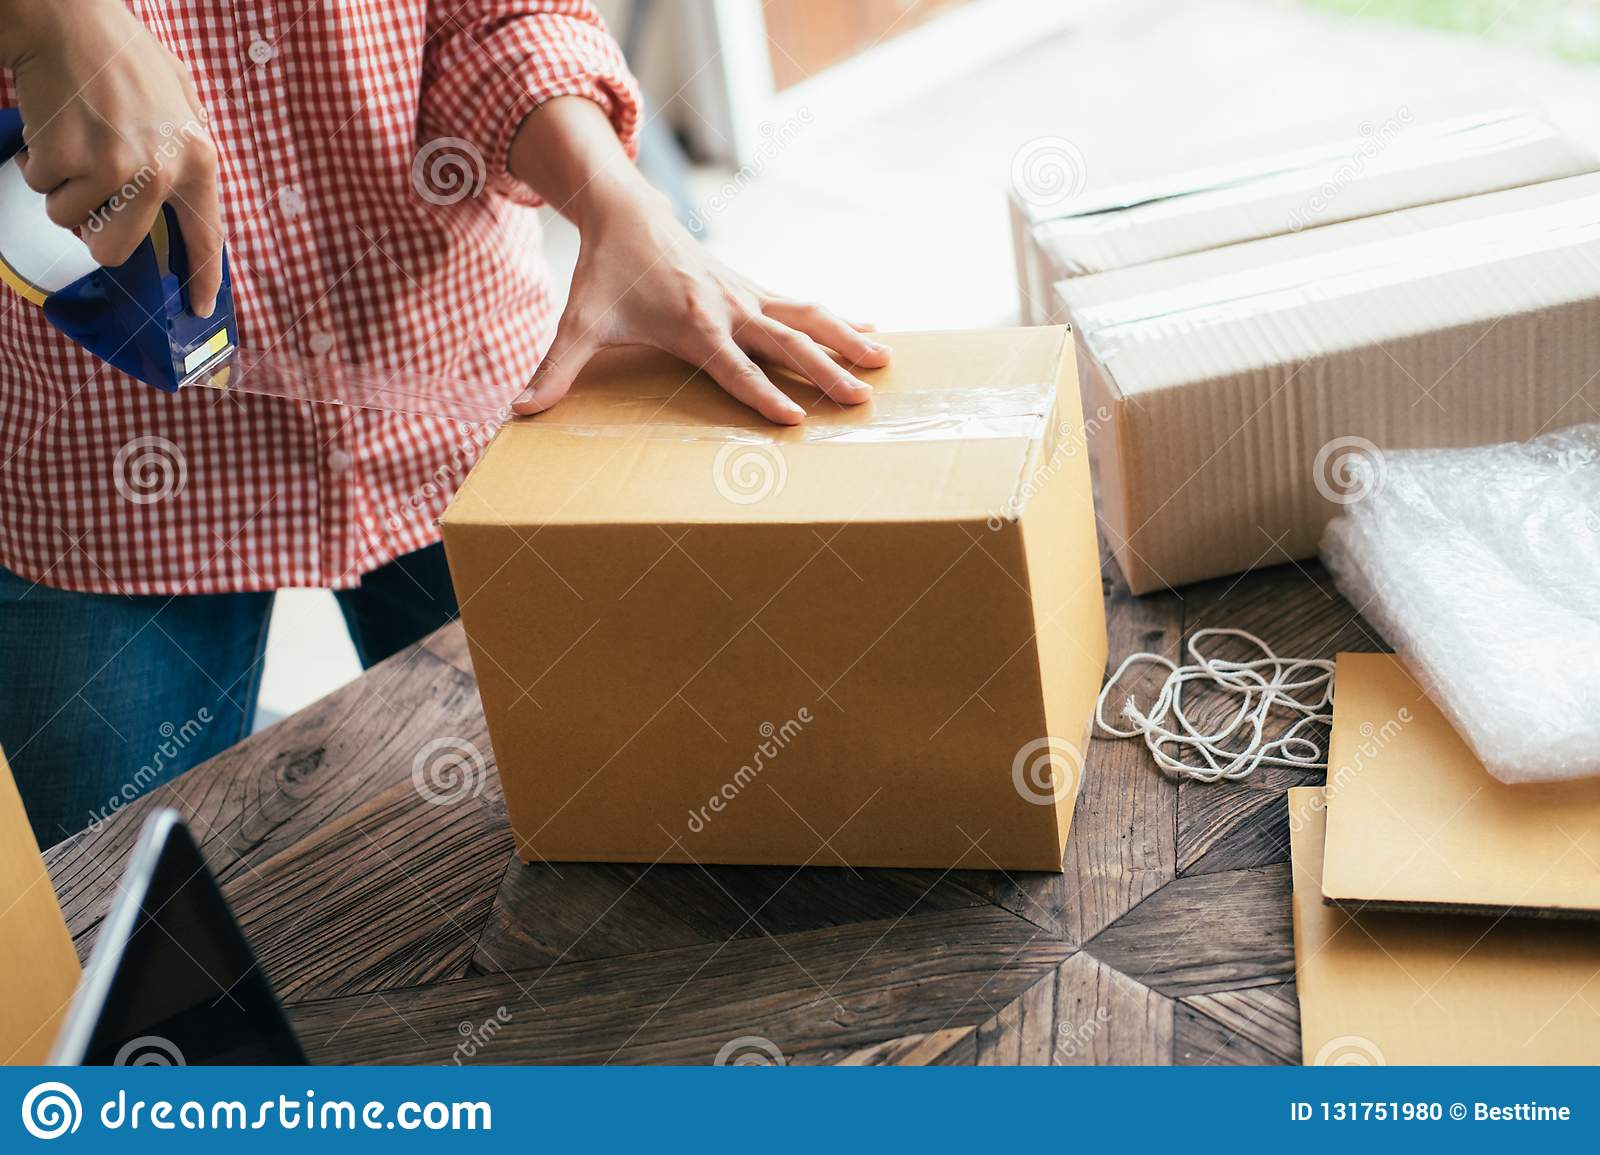 Business Start up SME concept. Young startup entrepreneur small business owner working at home, packaging and delivery situation